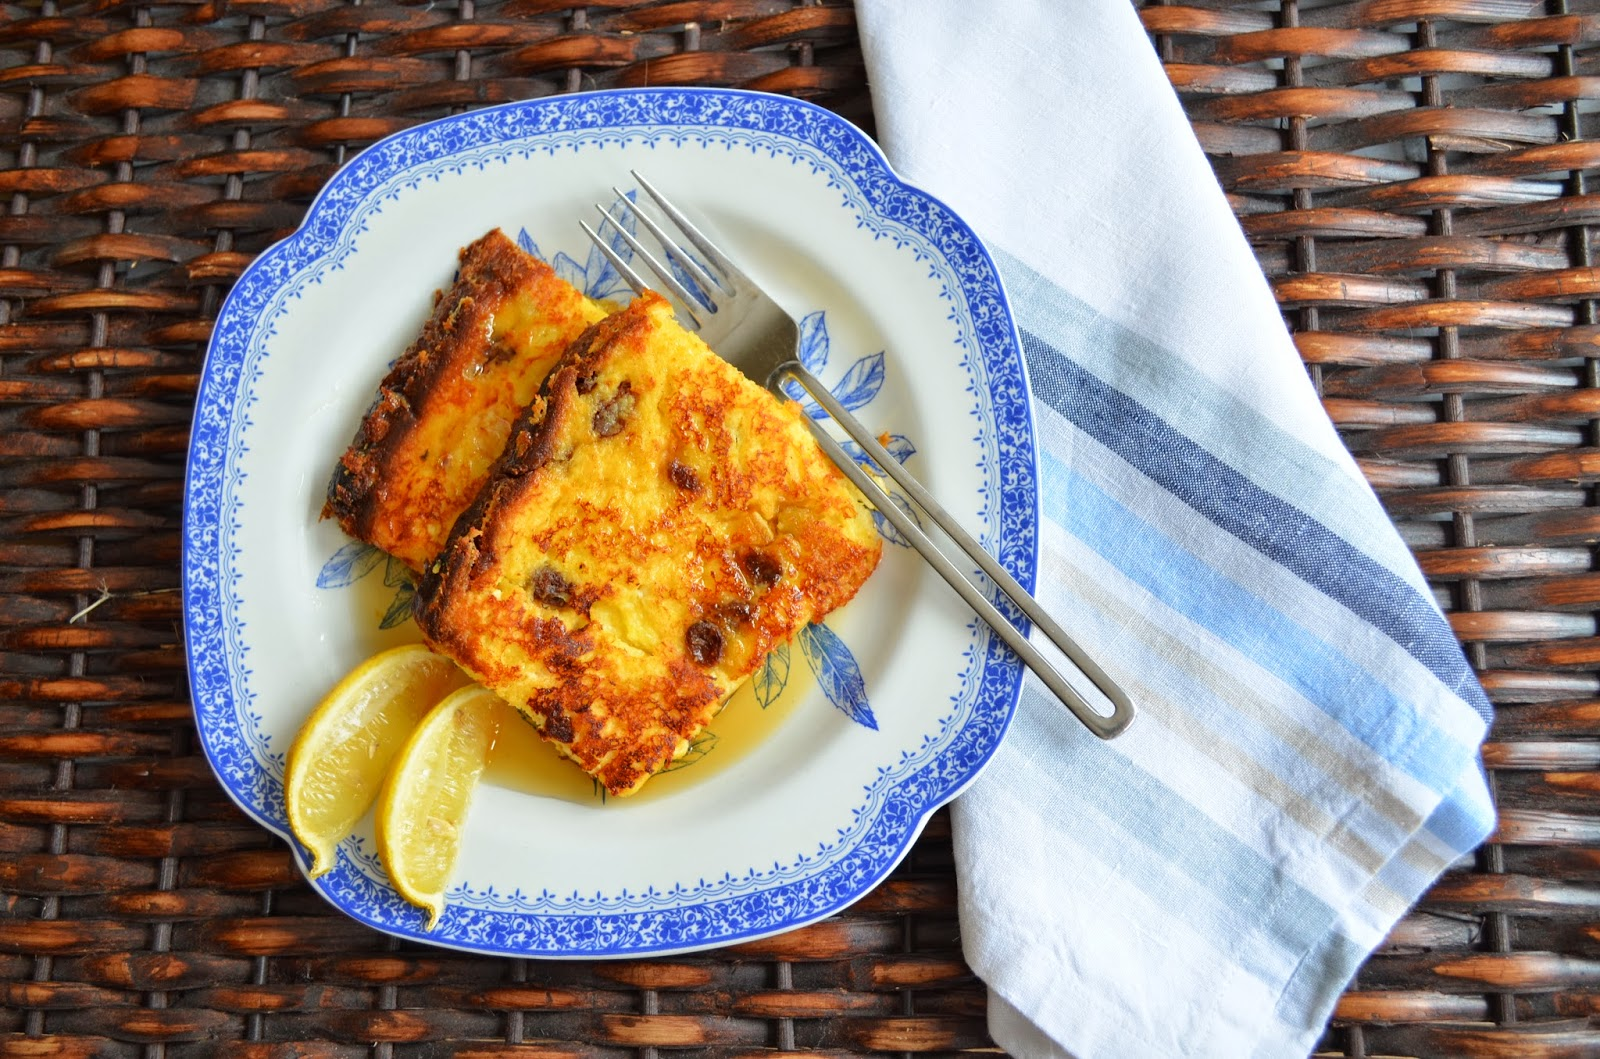 ... Panettone French Toast hasbecome a breakfast meal we enjoy throughout